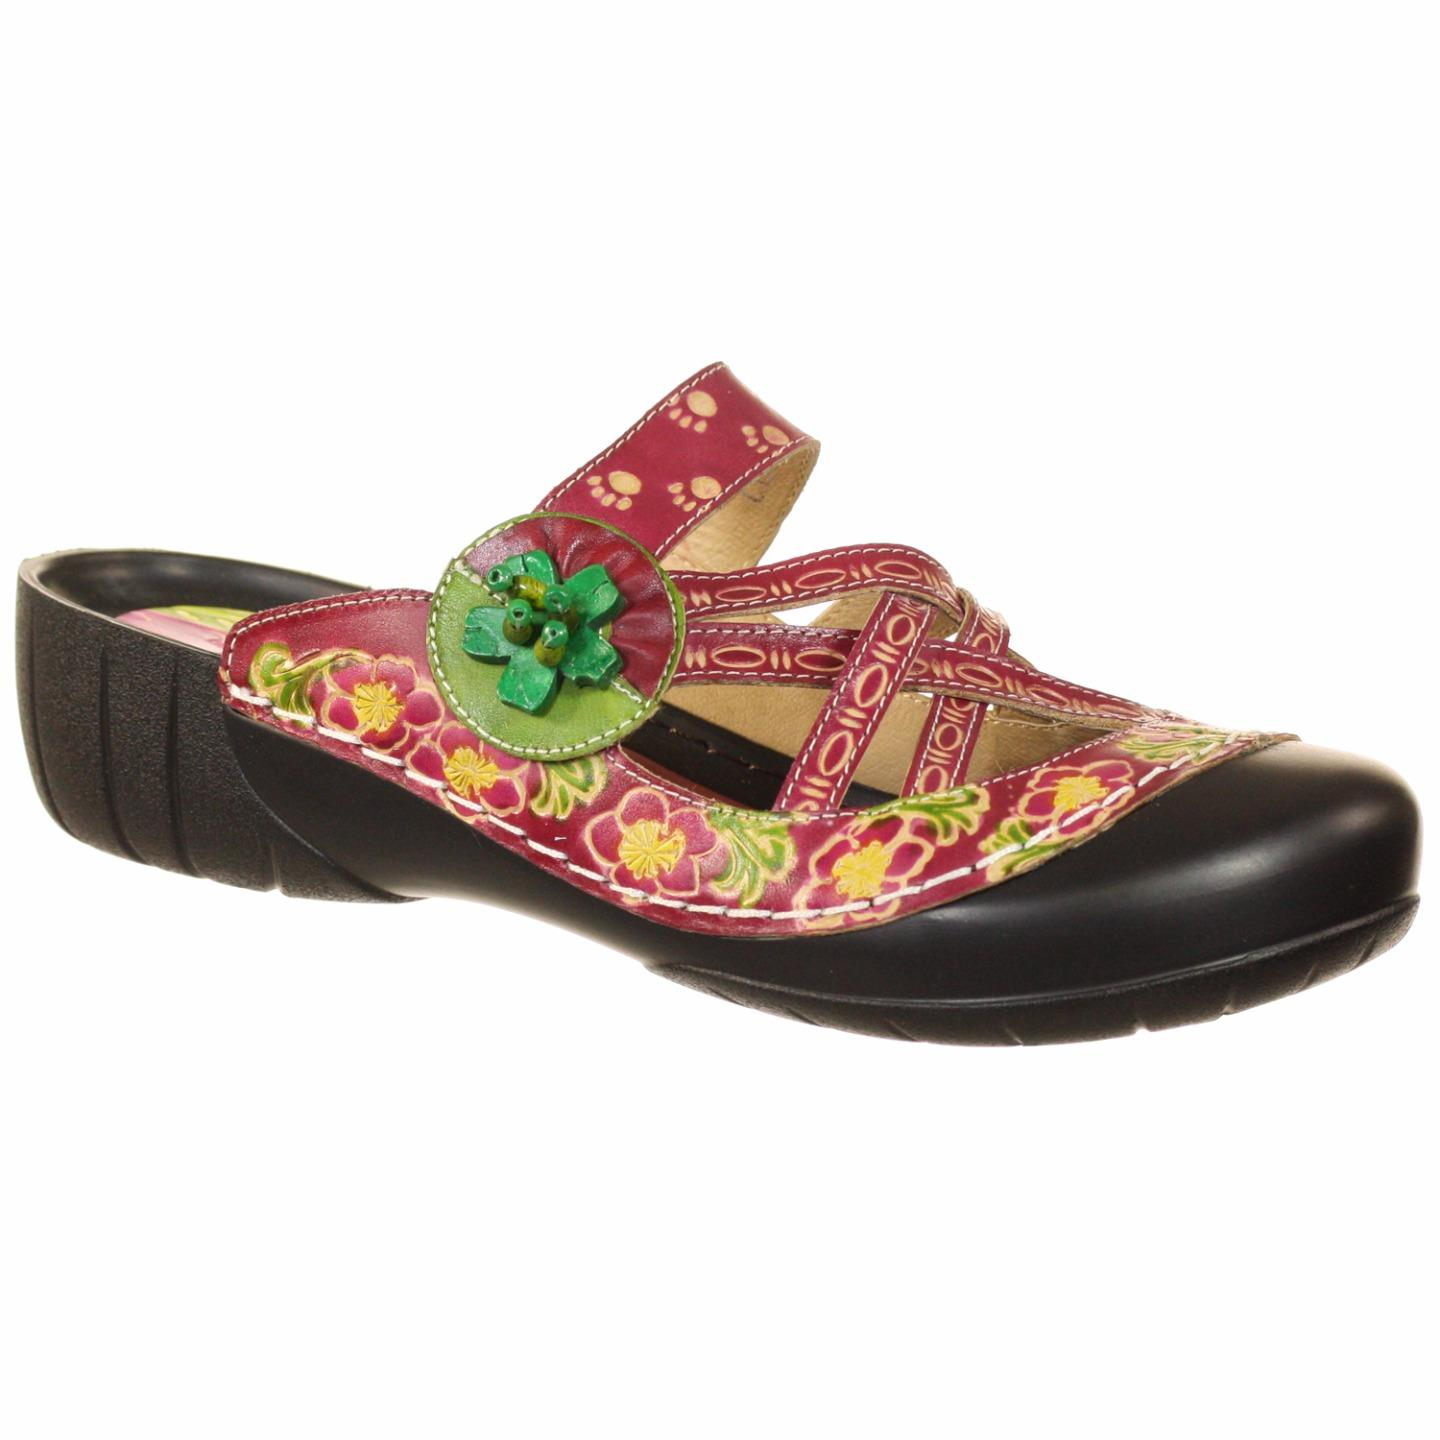 L'Artiste By Spring Step Christina Women's Clogs Bordeaux Multi EU 37 US 7 by Spring Step